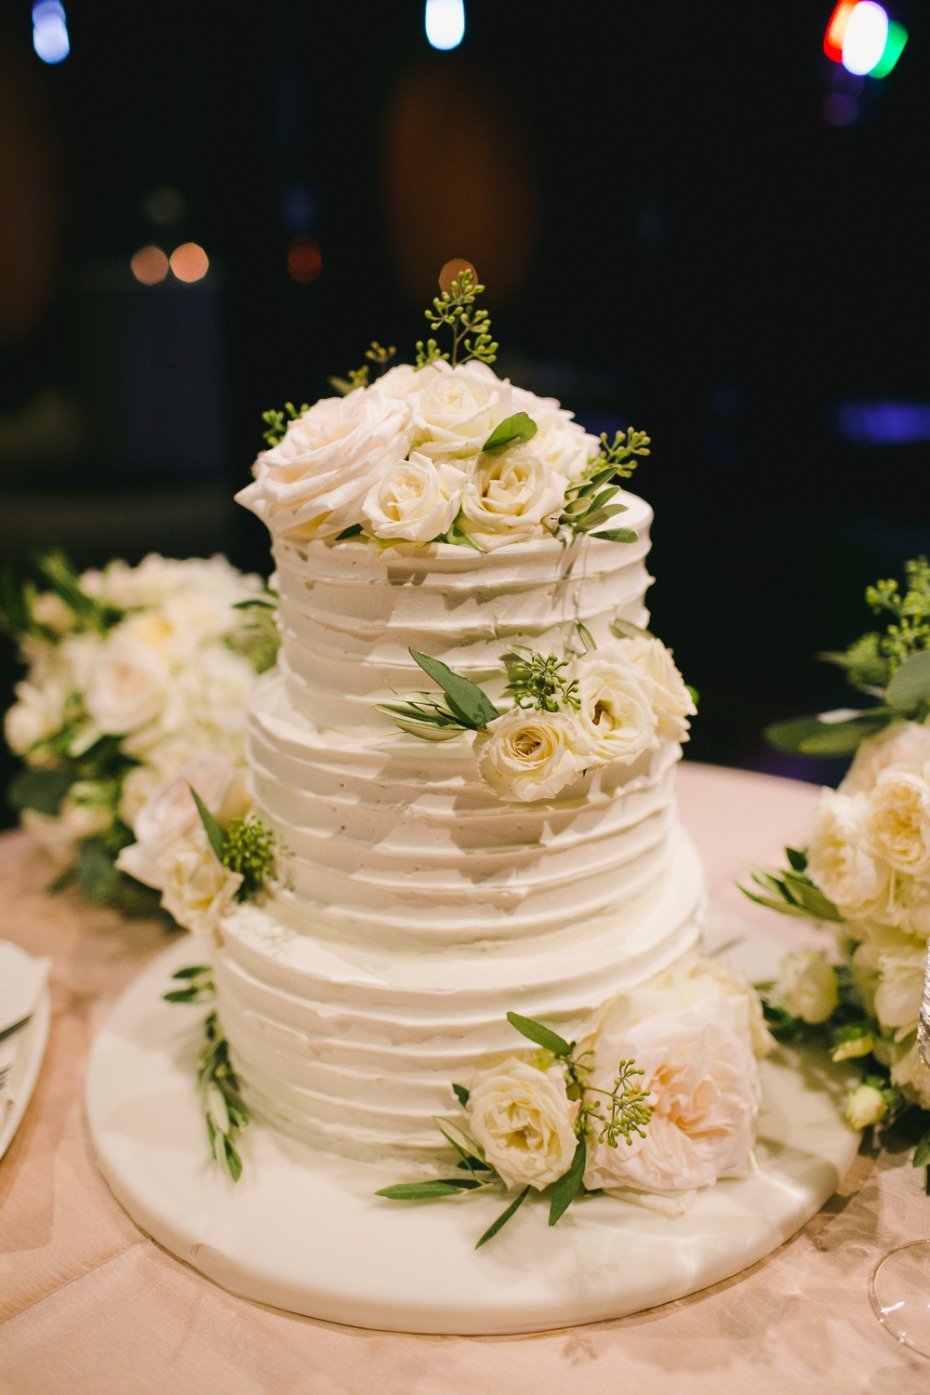 white wedding cake topped with roses and seeded eucalyptus